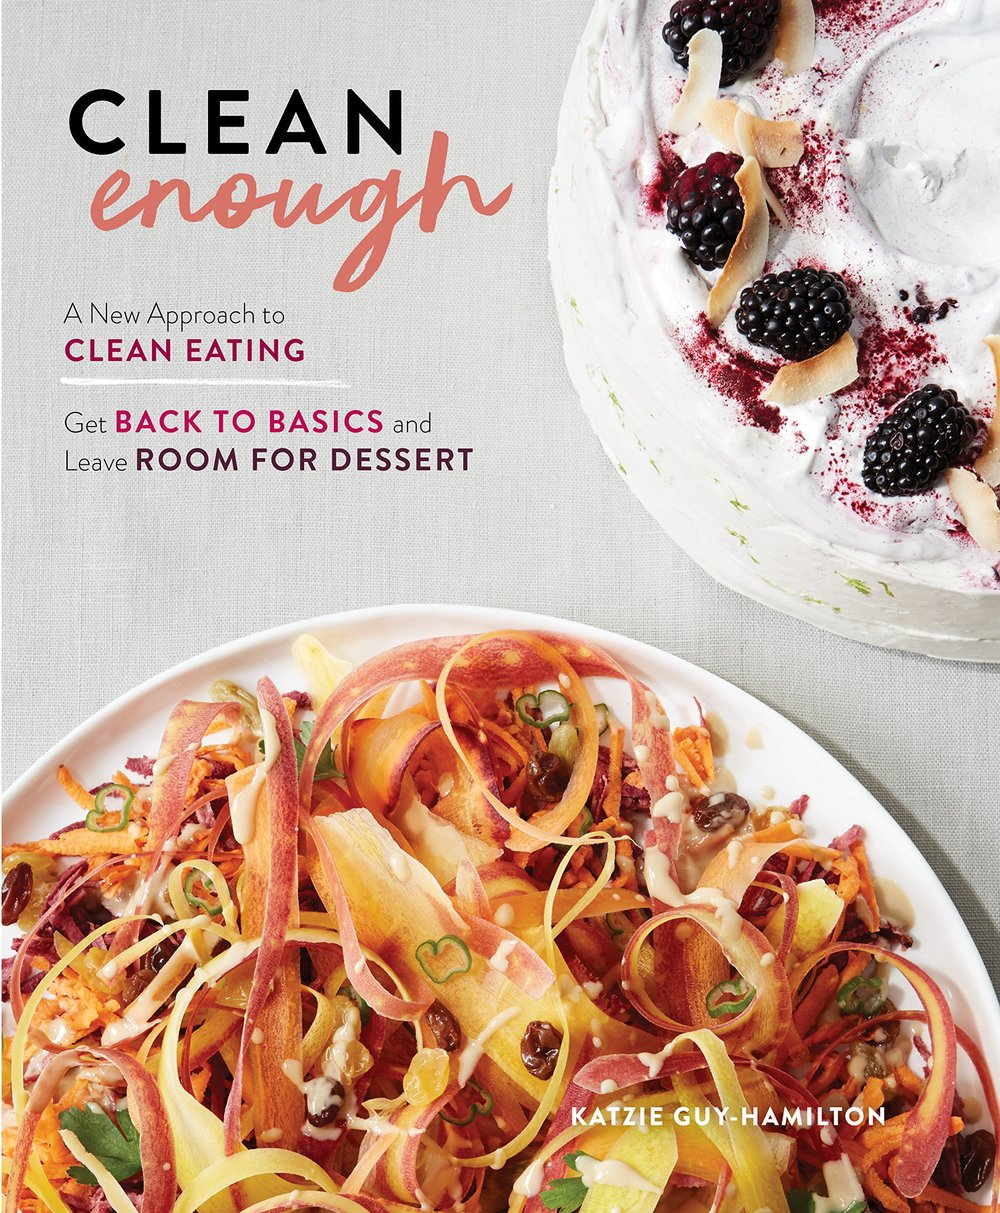 Clean Enough: Get Back to Basics and Leave Room for Dessert     By: Katzie Guy-Hamilton